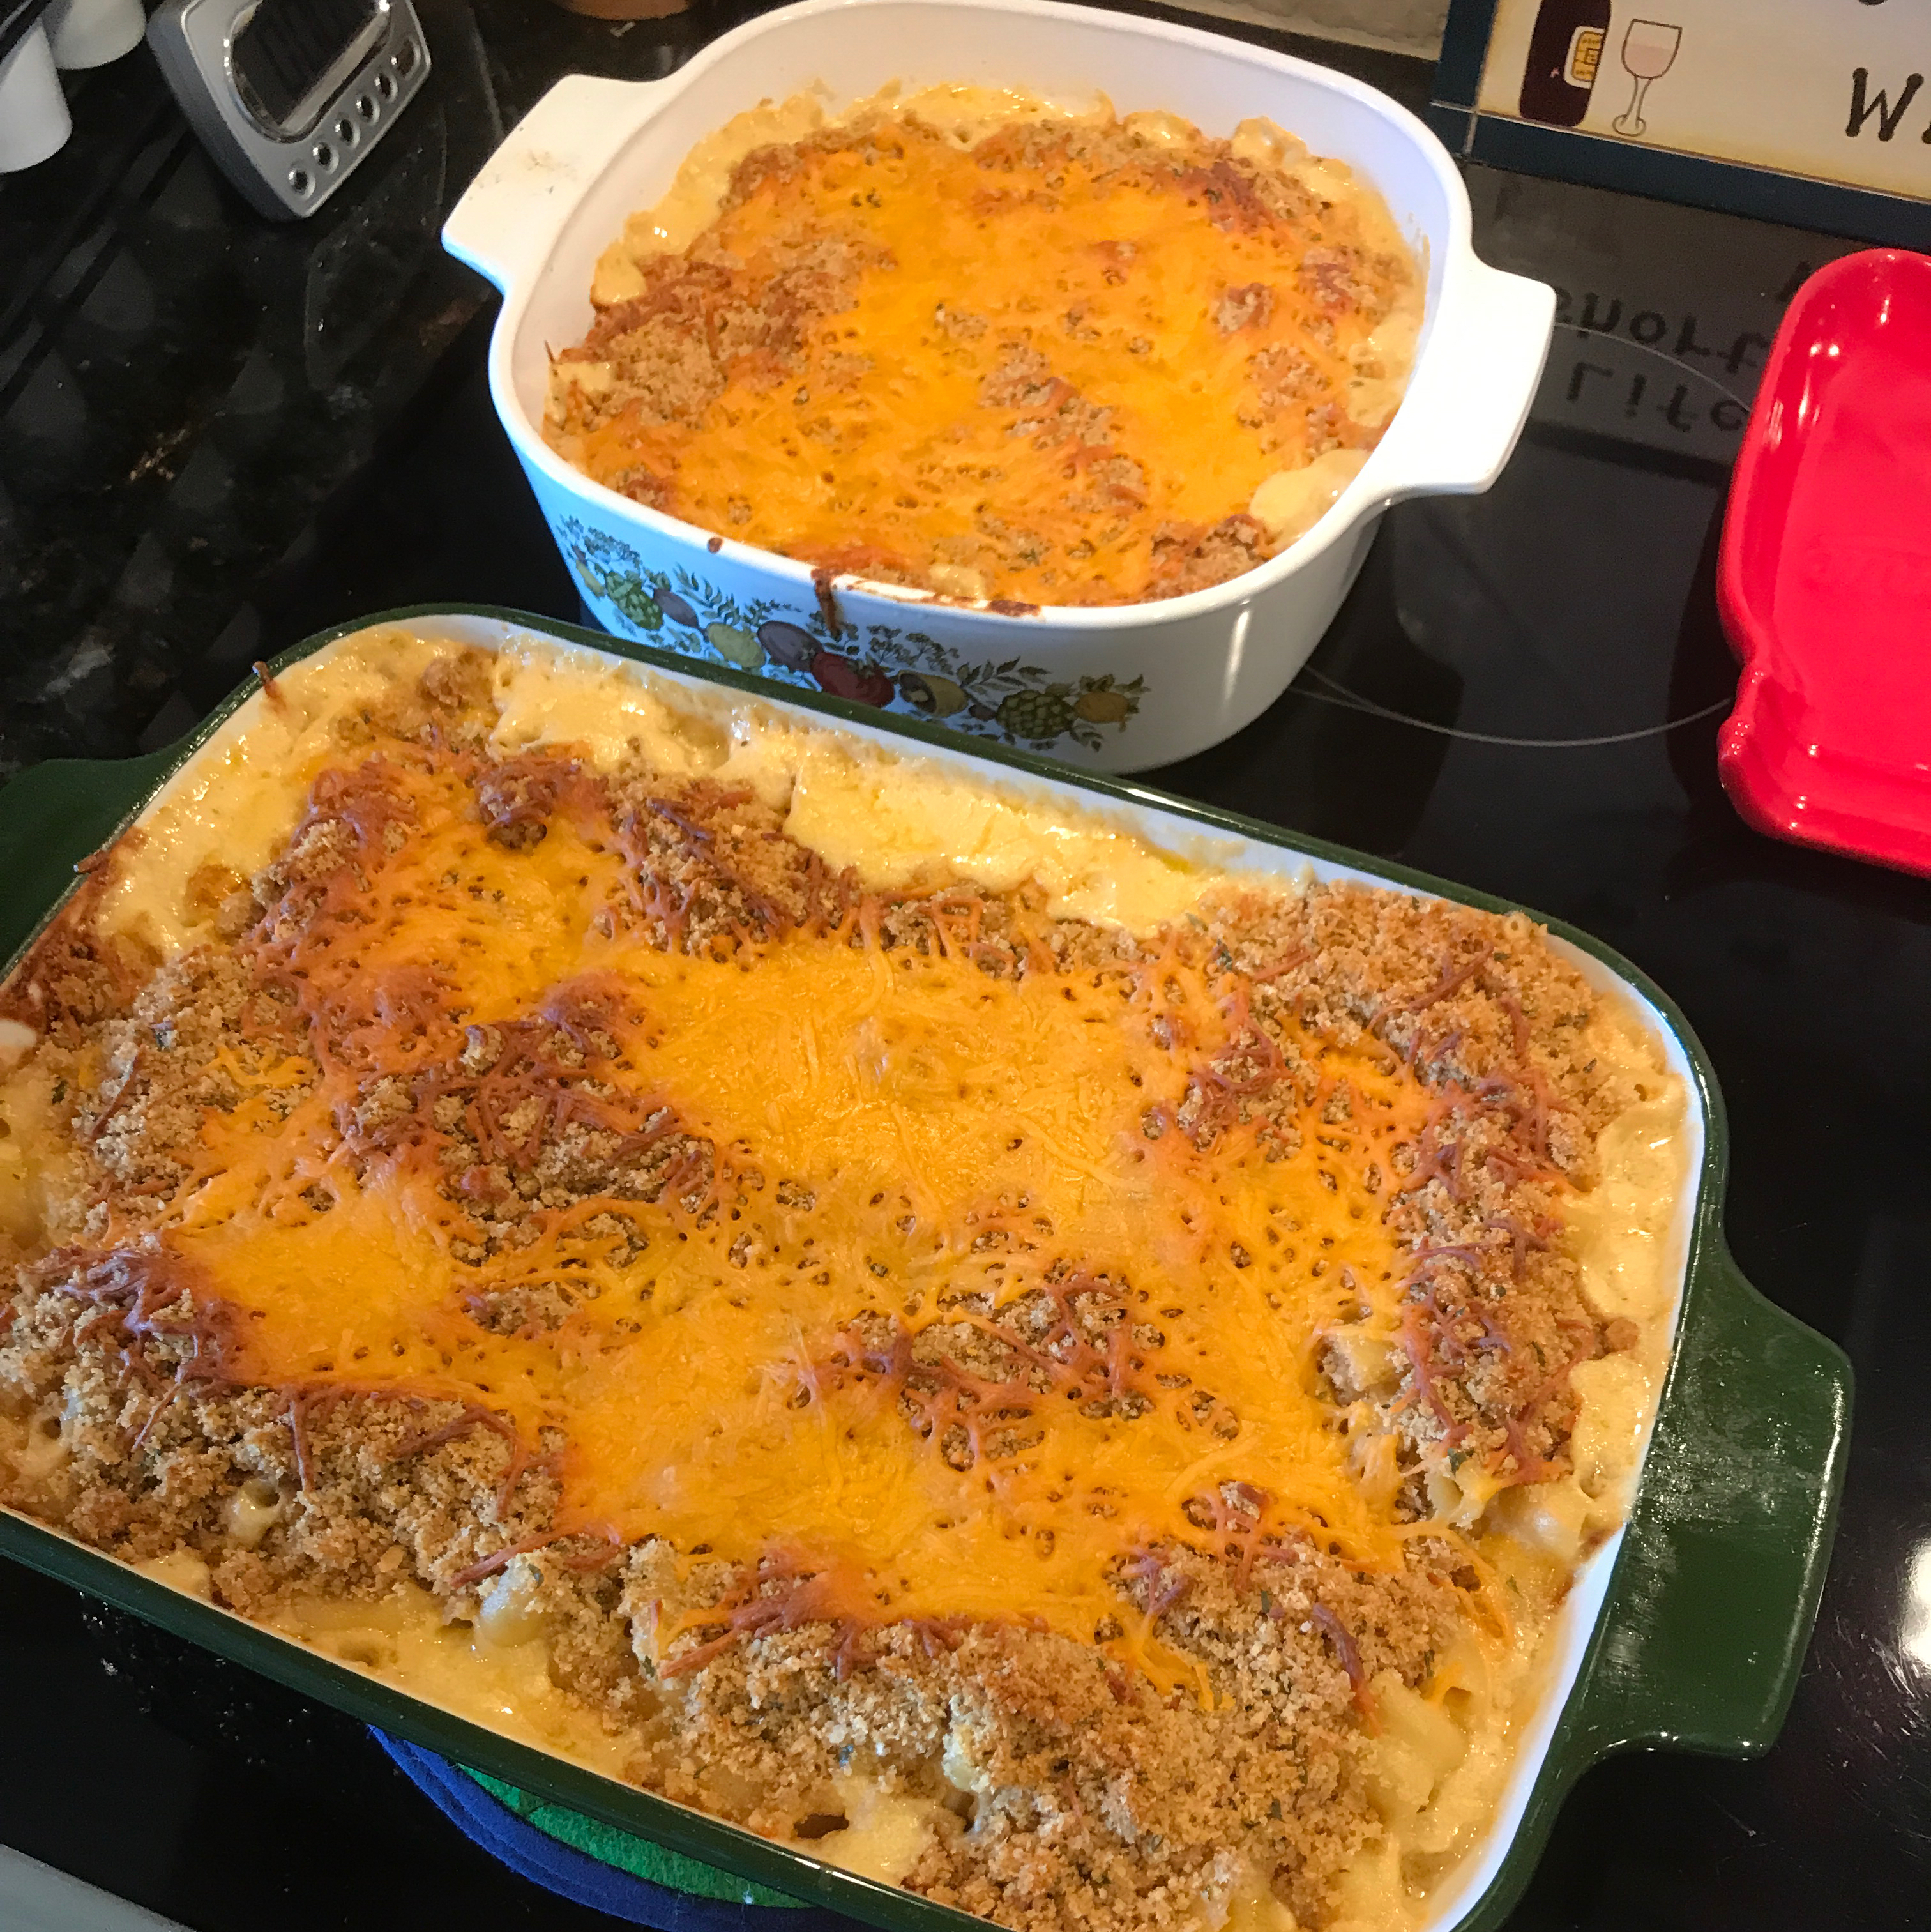 Baked Macaroni and Cheese!